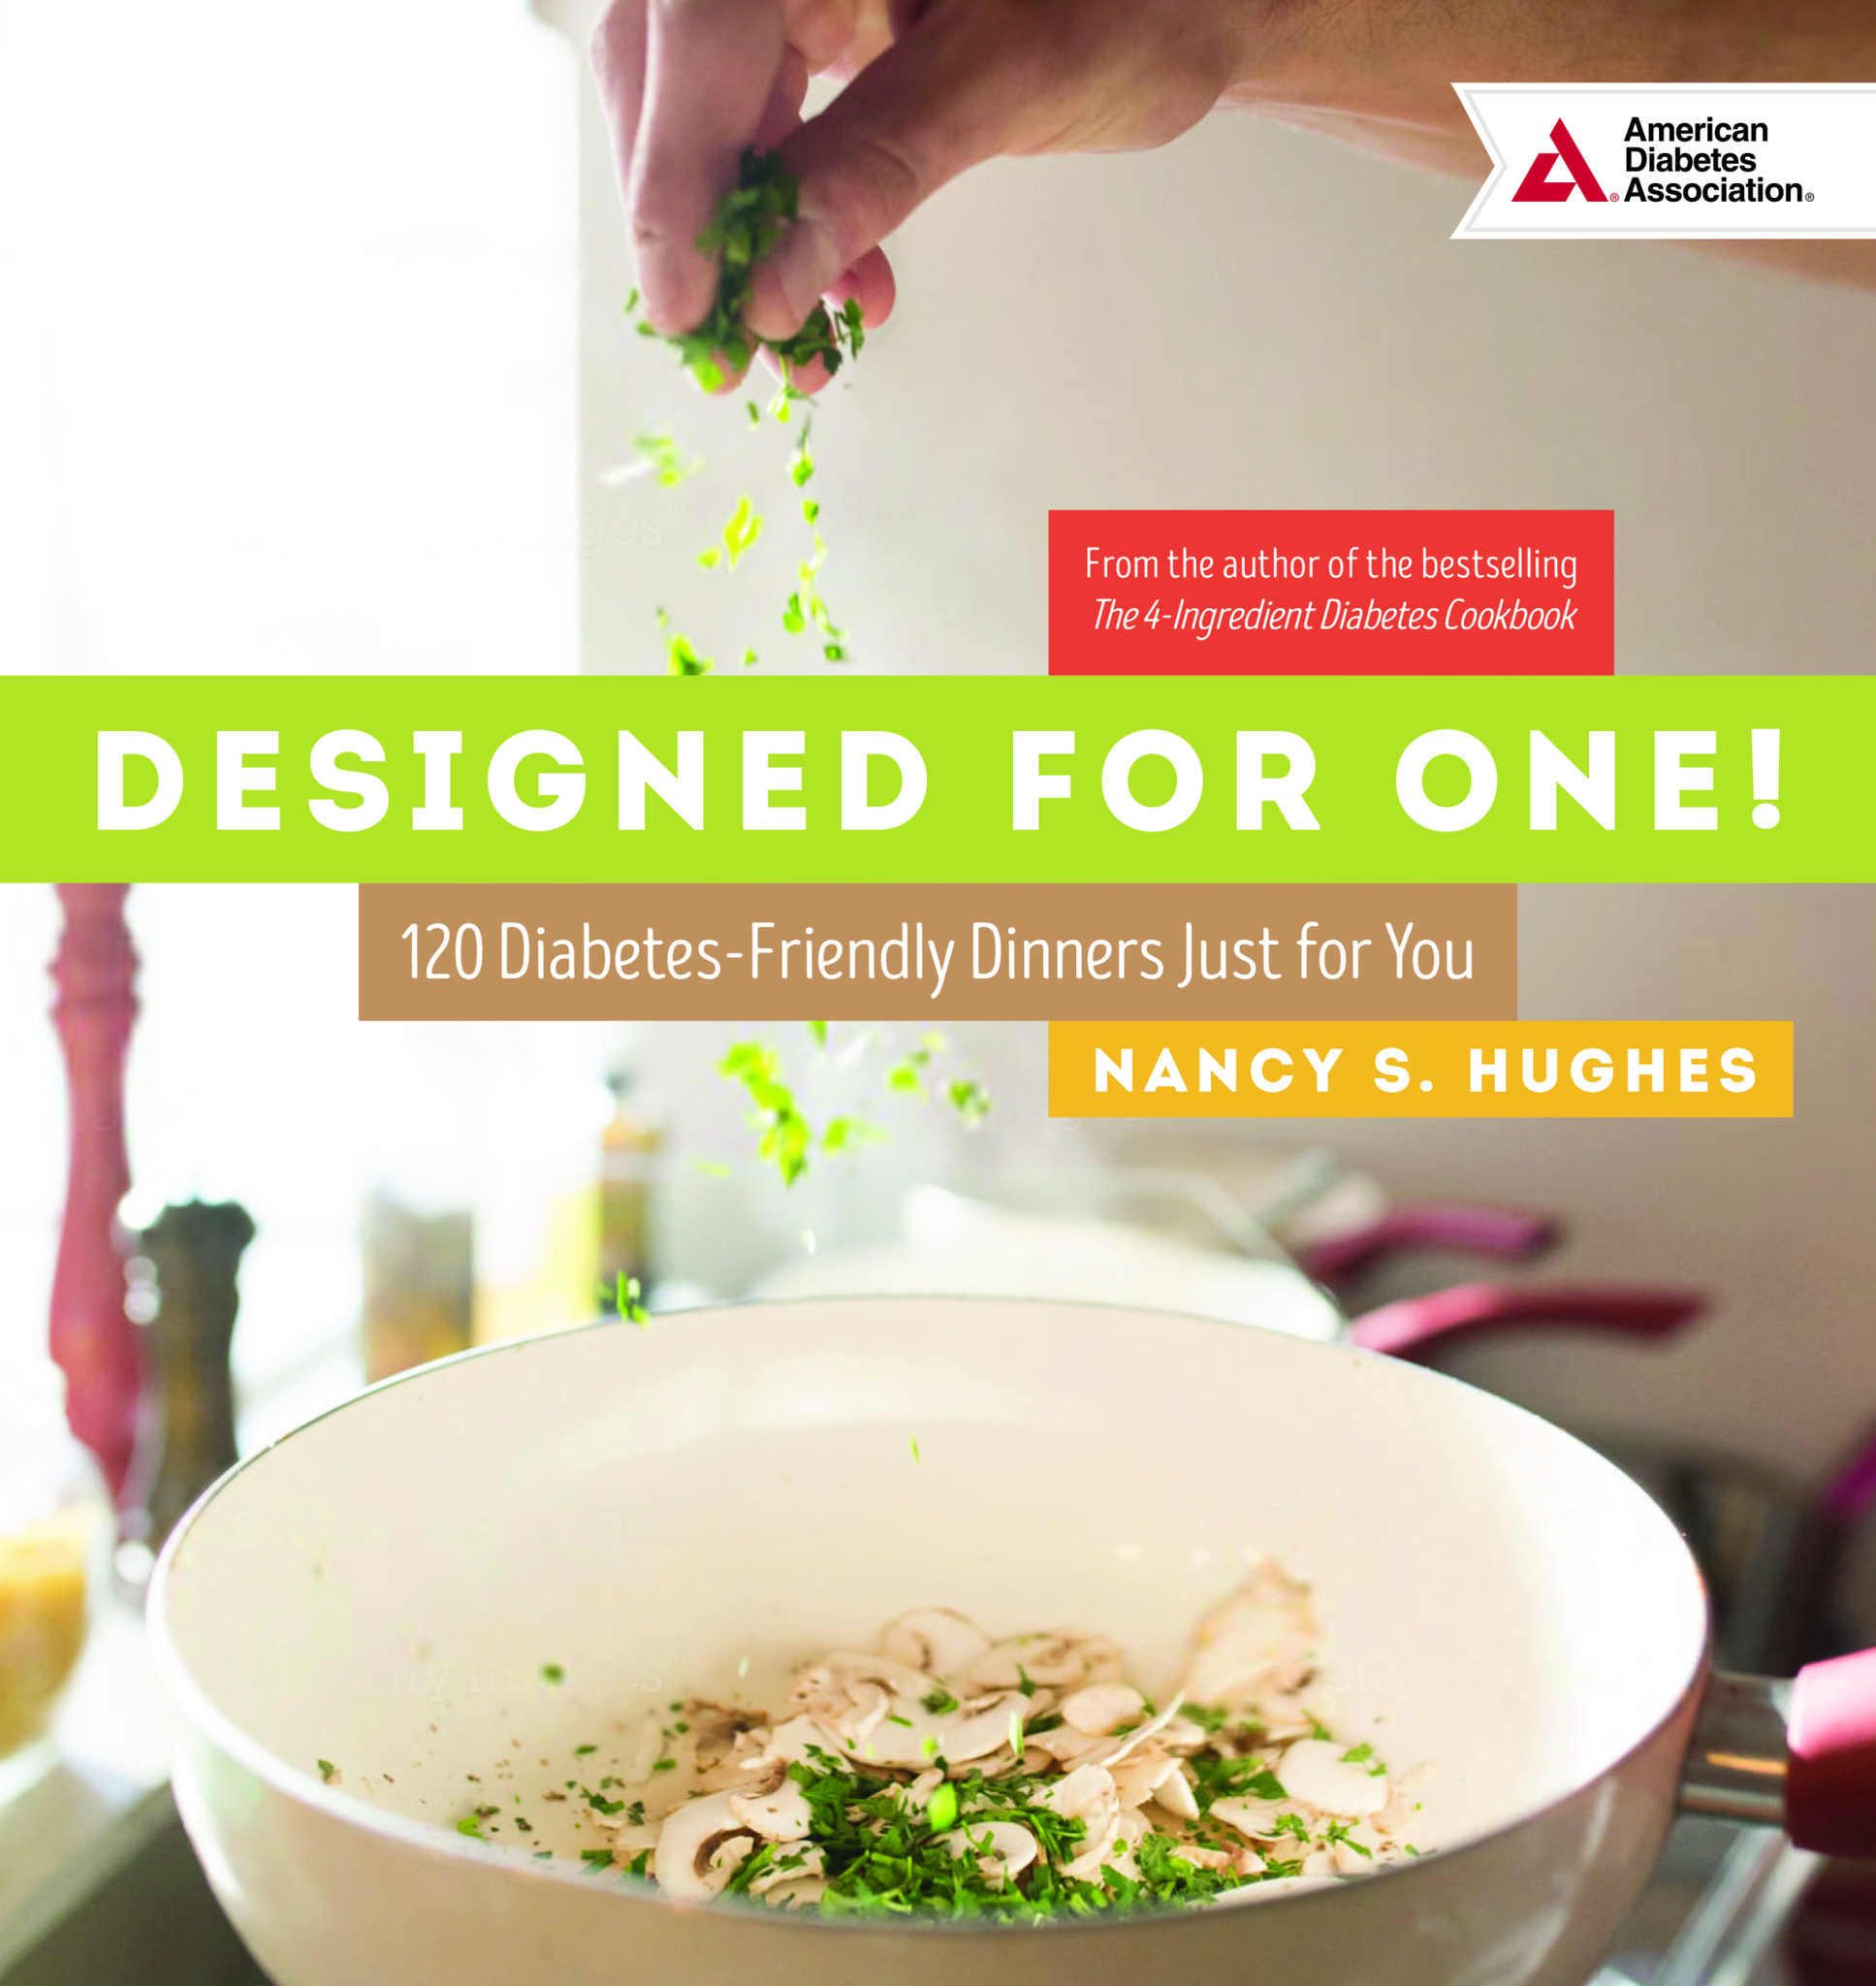 Cookbook giveaway closed designed for one diabetes friendly designed for one is available at shopdiabetes in bookstores nationwide or by calling 1 800 232 6733 food photography mittera forumfinder Gallery